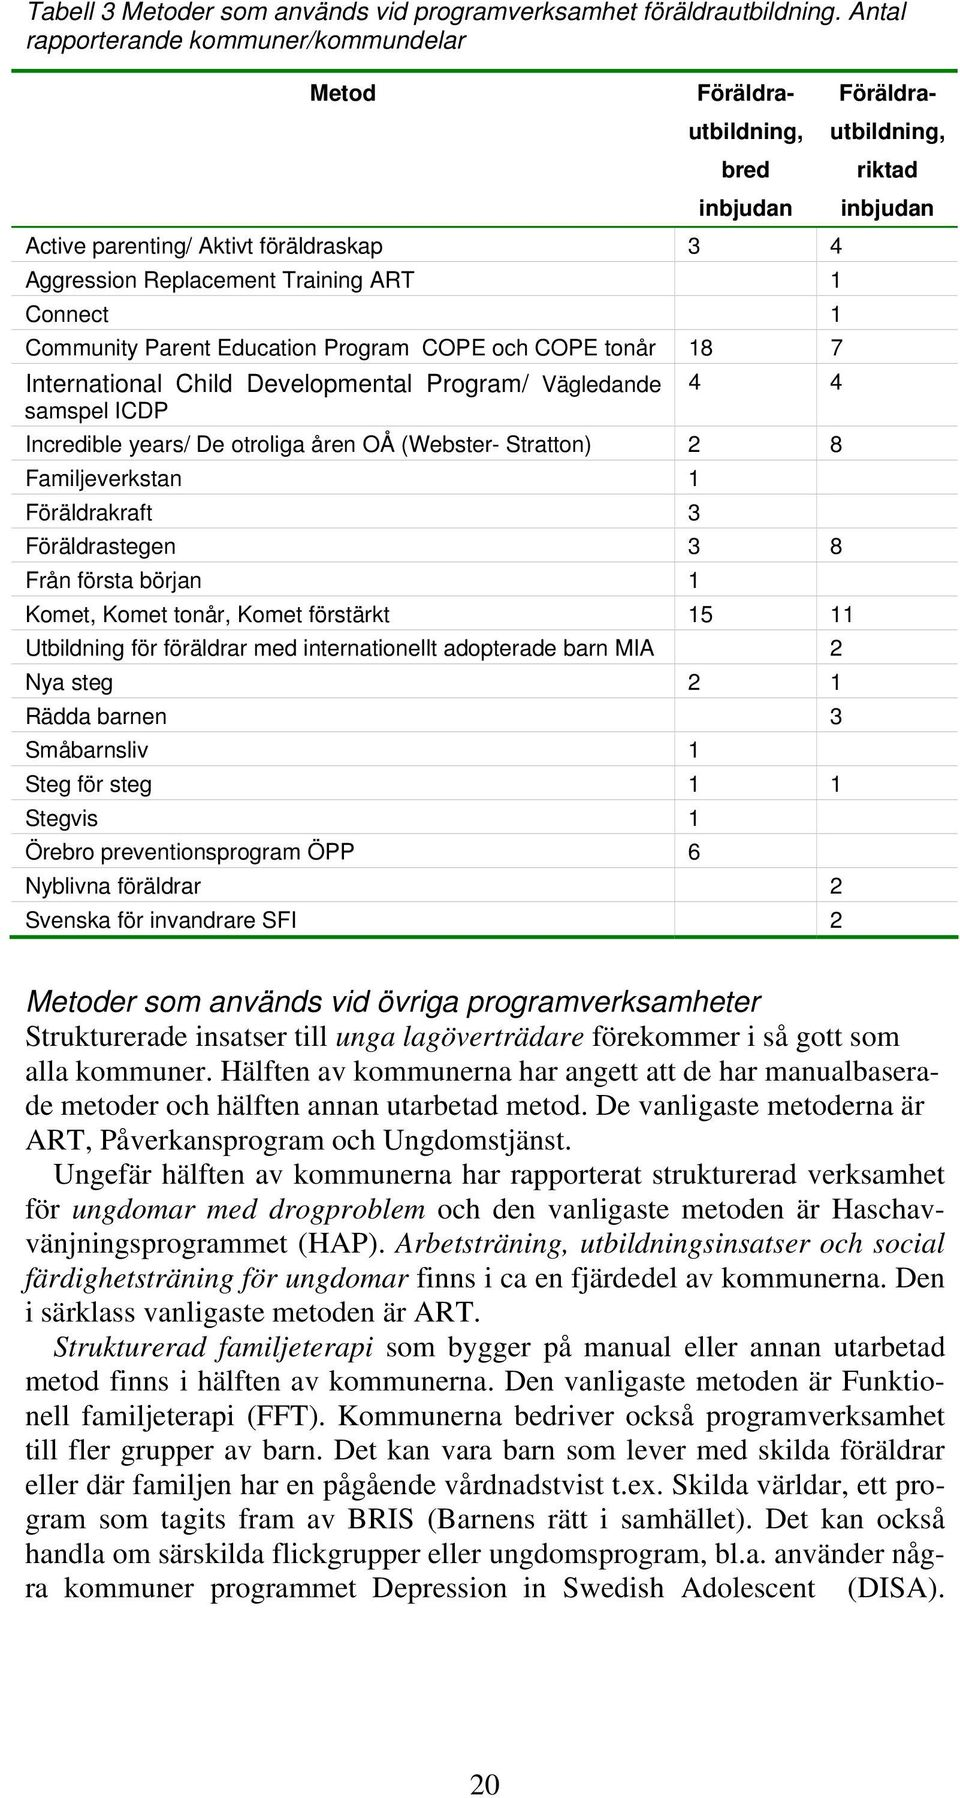 Program COPE och COPE tonår 18 7 International Child Developmental Program/ Vägledande samspel ICDP 4 4 Incredible years/ De otroliga åren OÅ (Webster- Stratton) 2 8 Familjeverkstan 1 Föräldrakraft 3